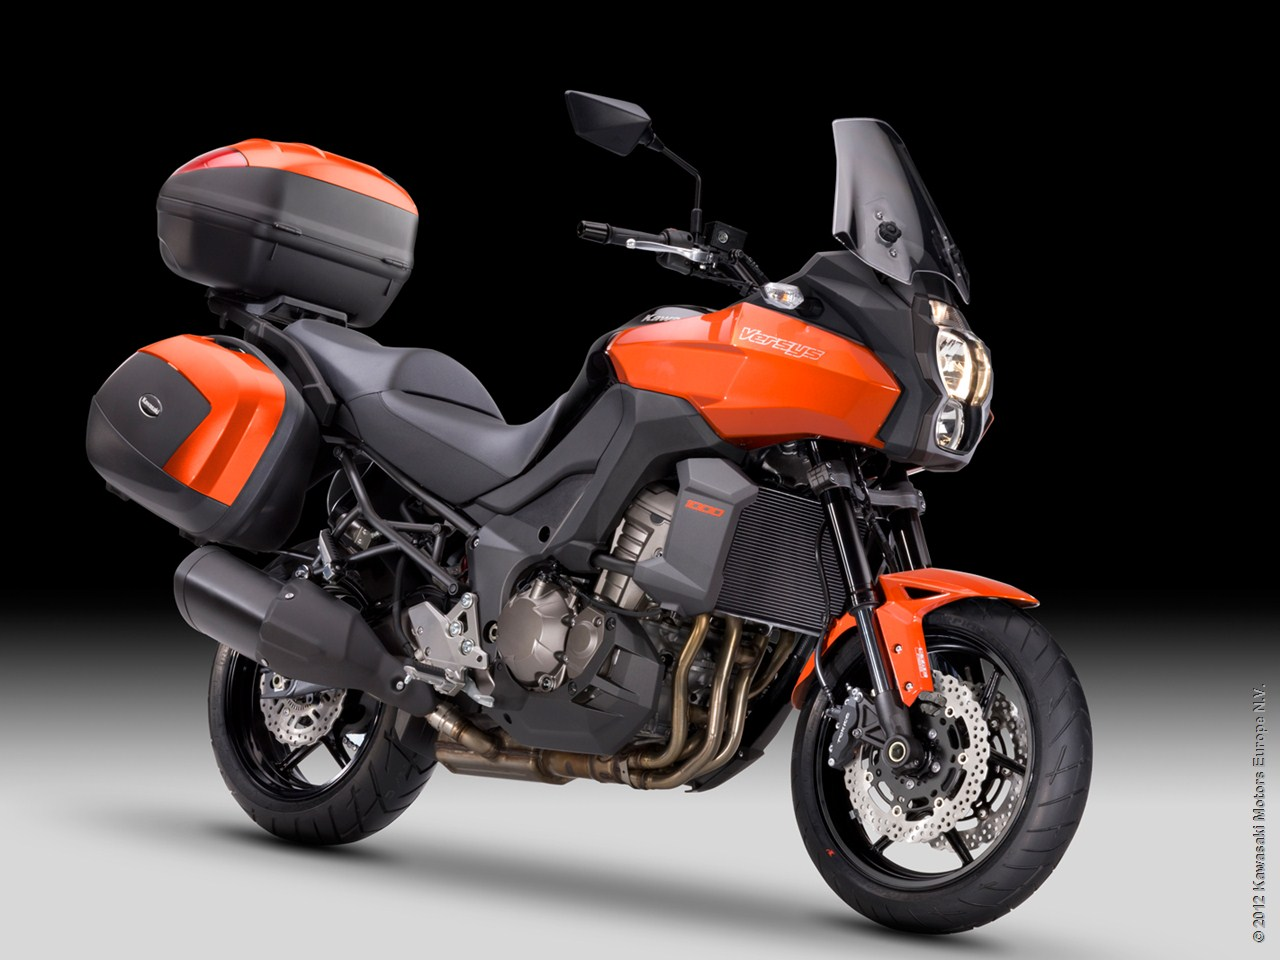 2013 Kawasaki Versys 1000 Grand Tourer Shows Nifty